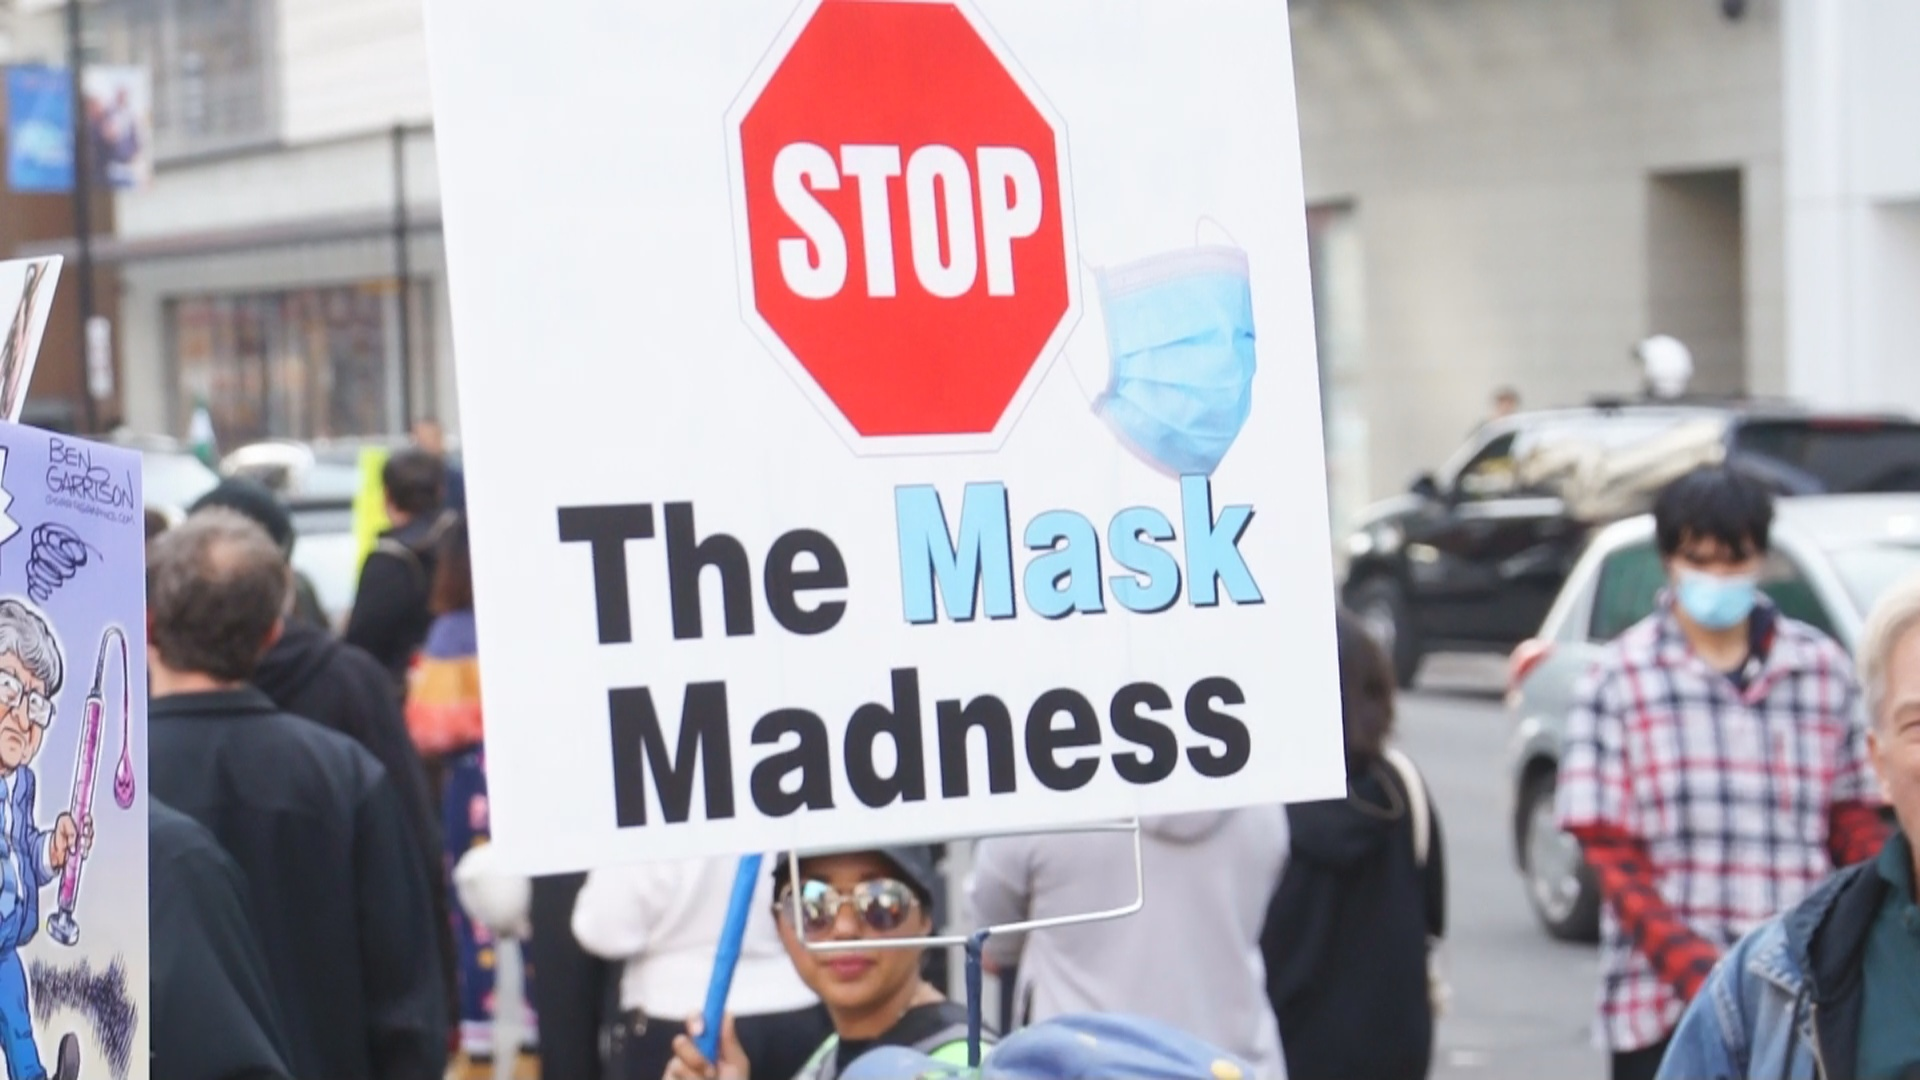 Stop the Mask Madness